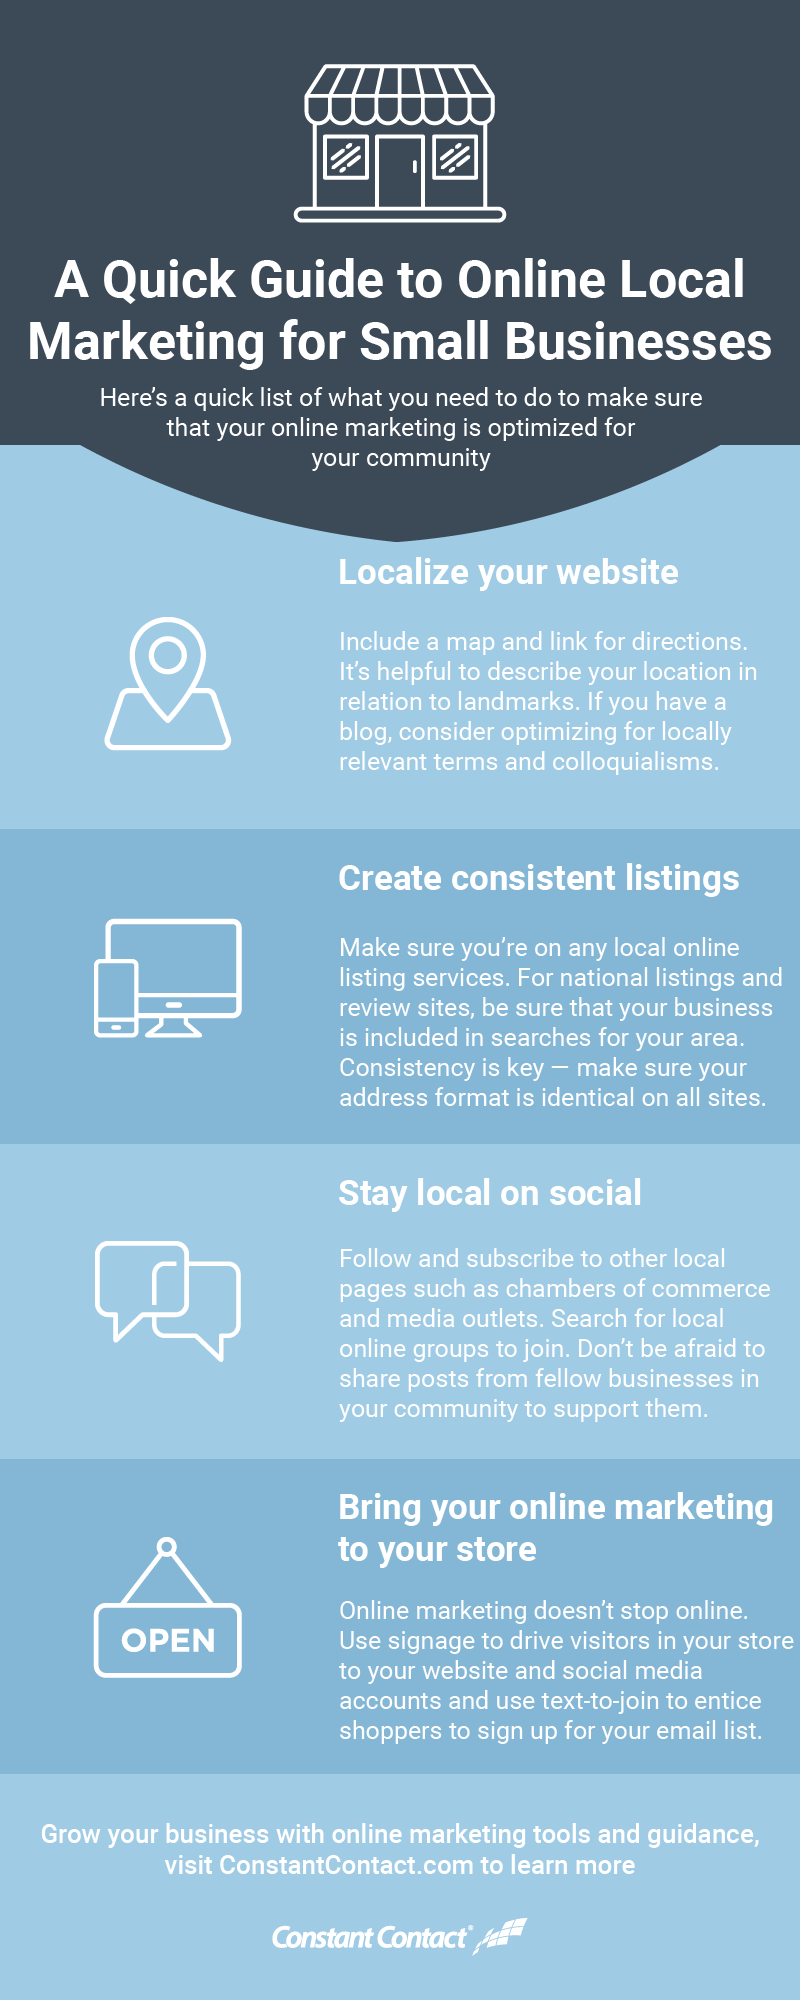 A Quick Guide to Online Local Marketing for Small Businesses [Infographic]